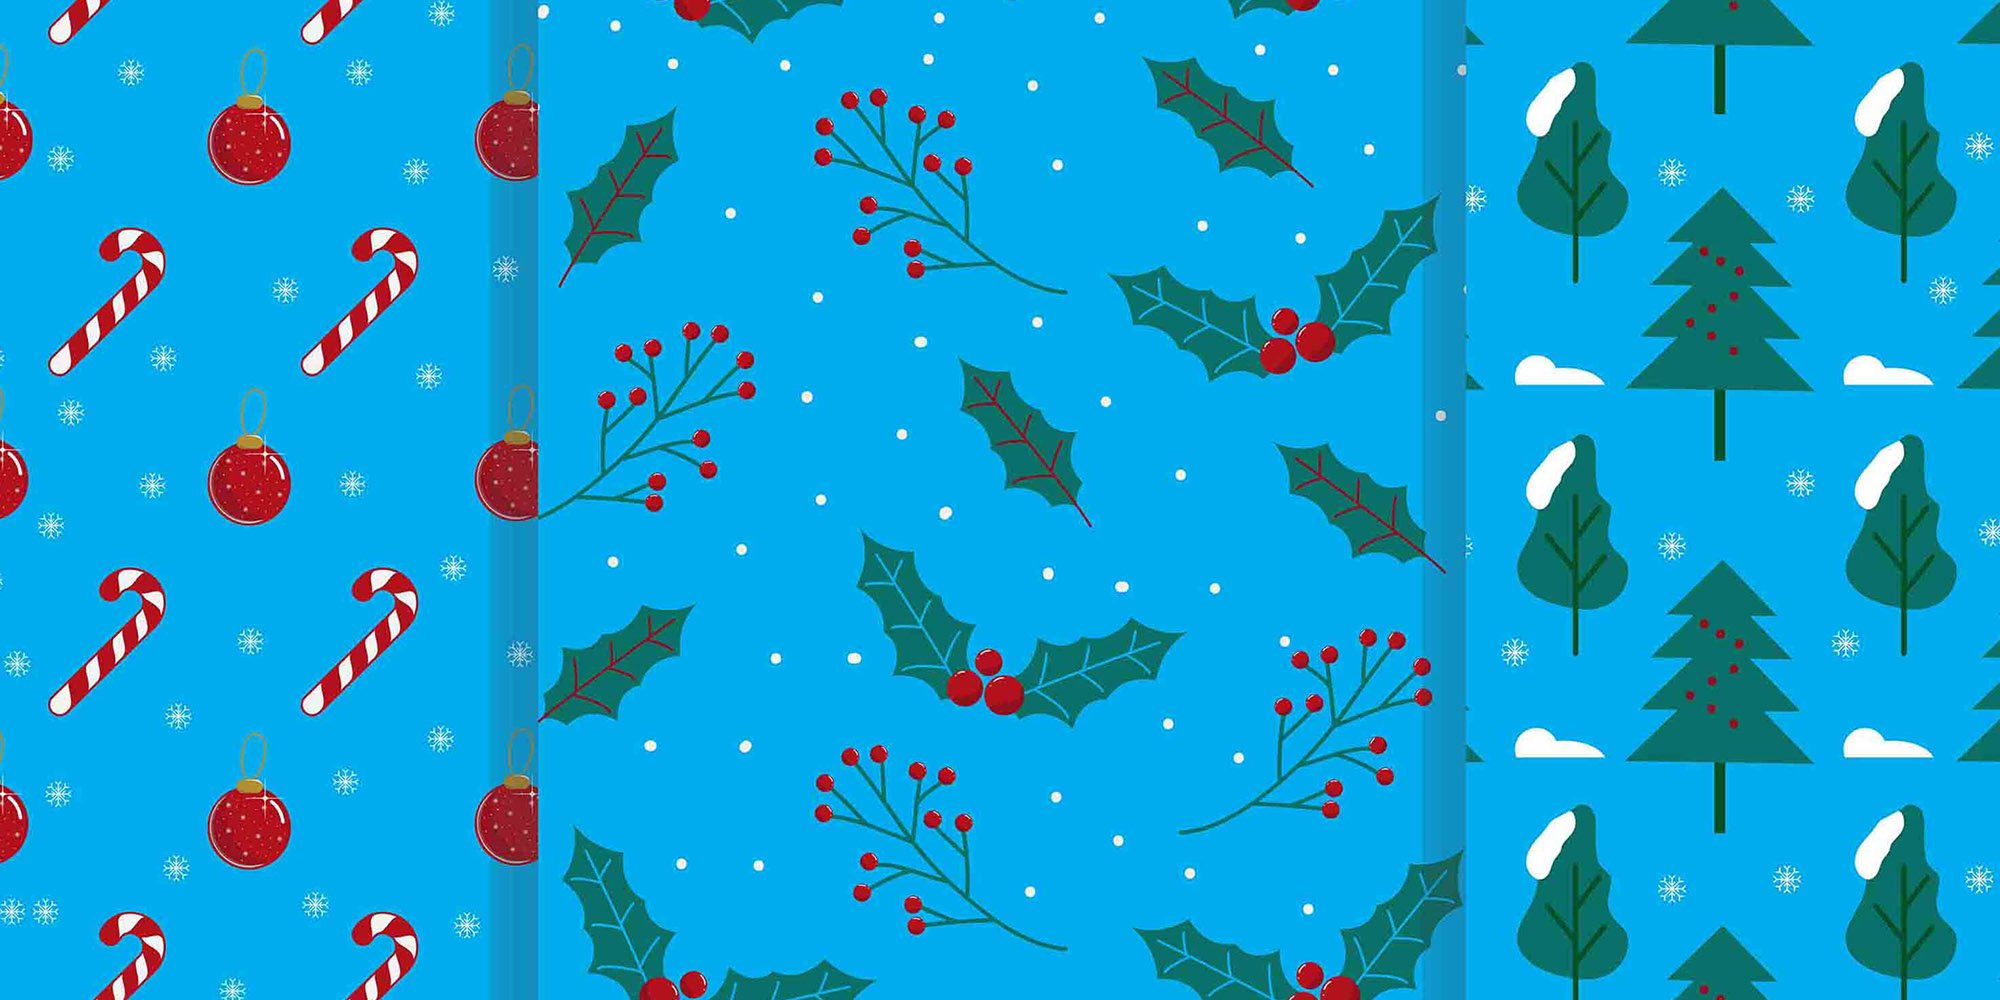 9 Christmas Patterns Vector Art .EPS - christmas pattern 1